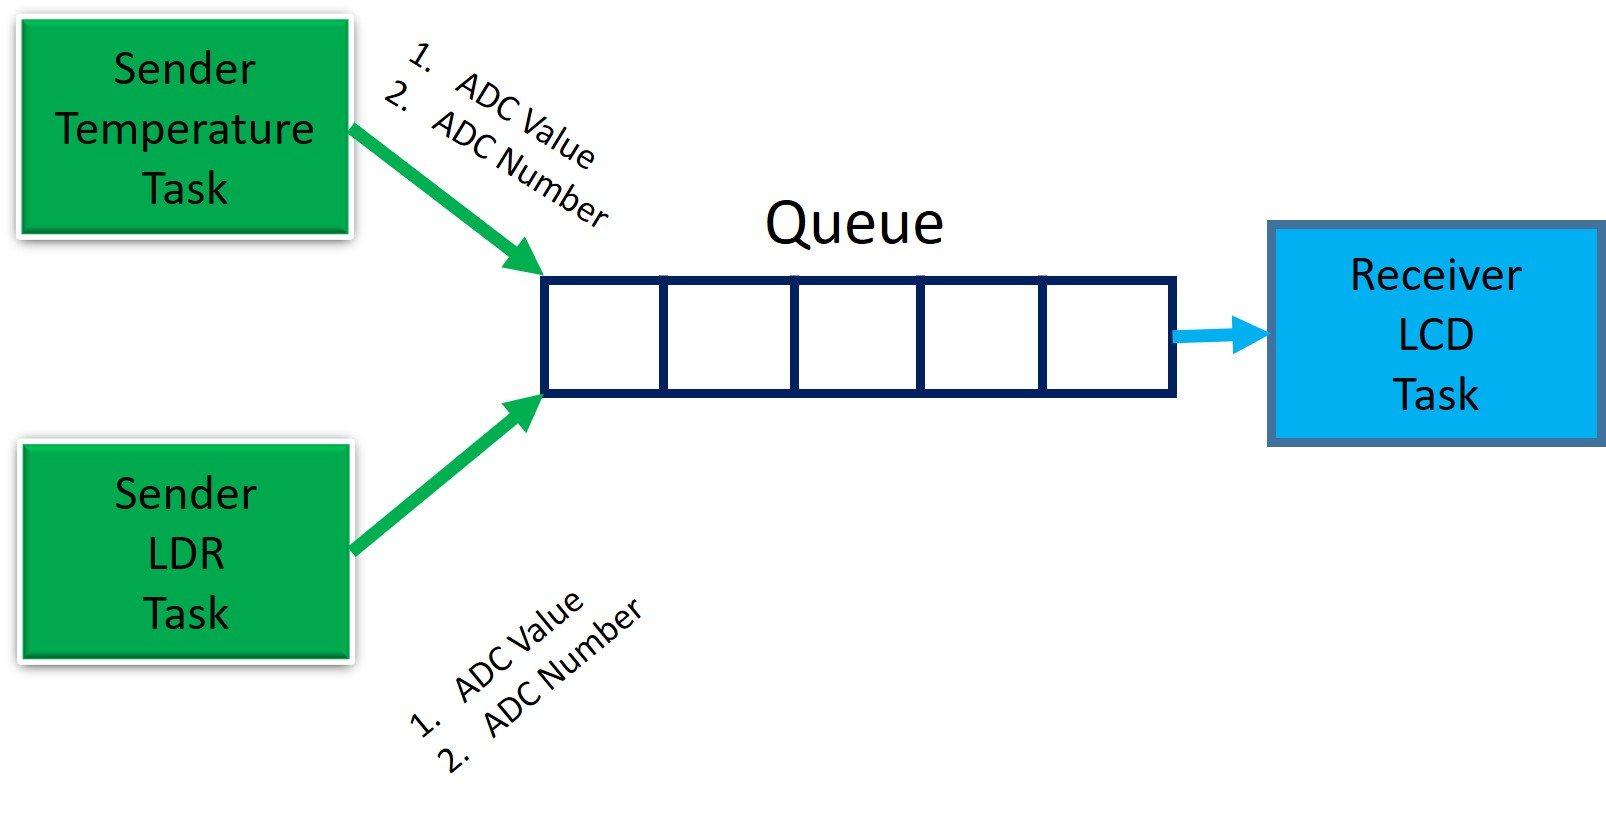 FreeRTOS Queue structure reading data from multiple resources with Arduino